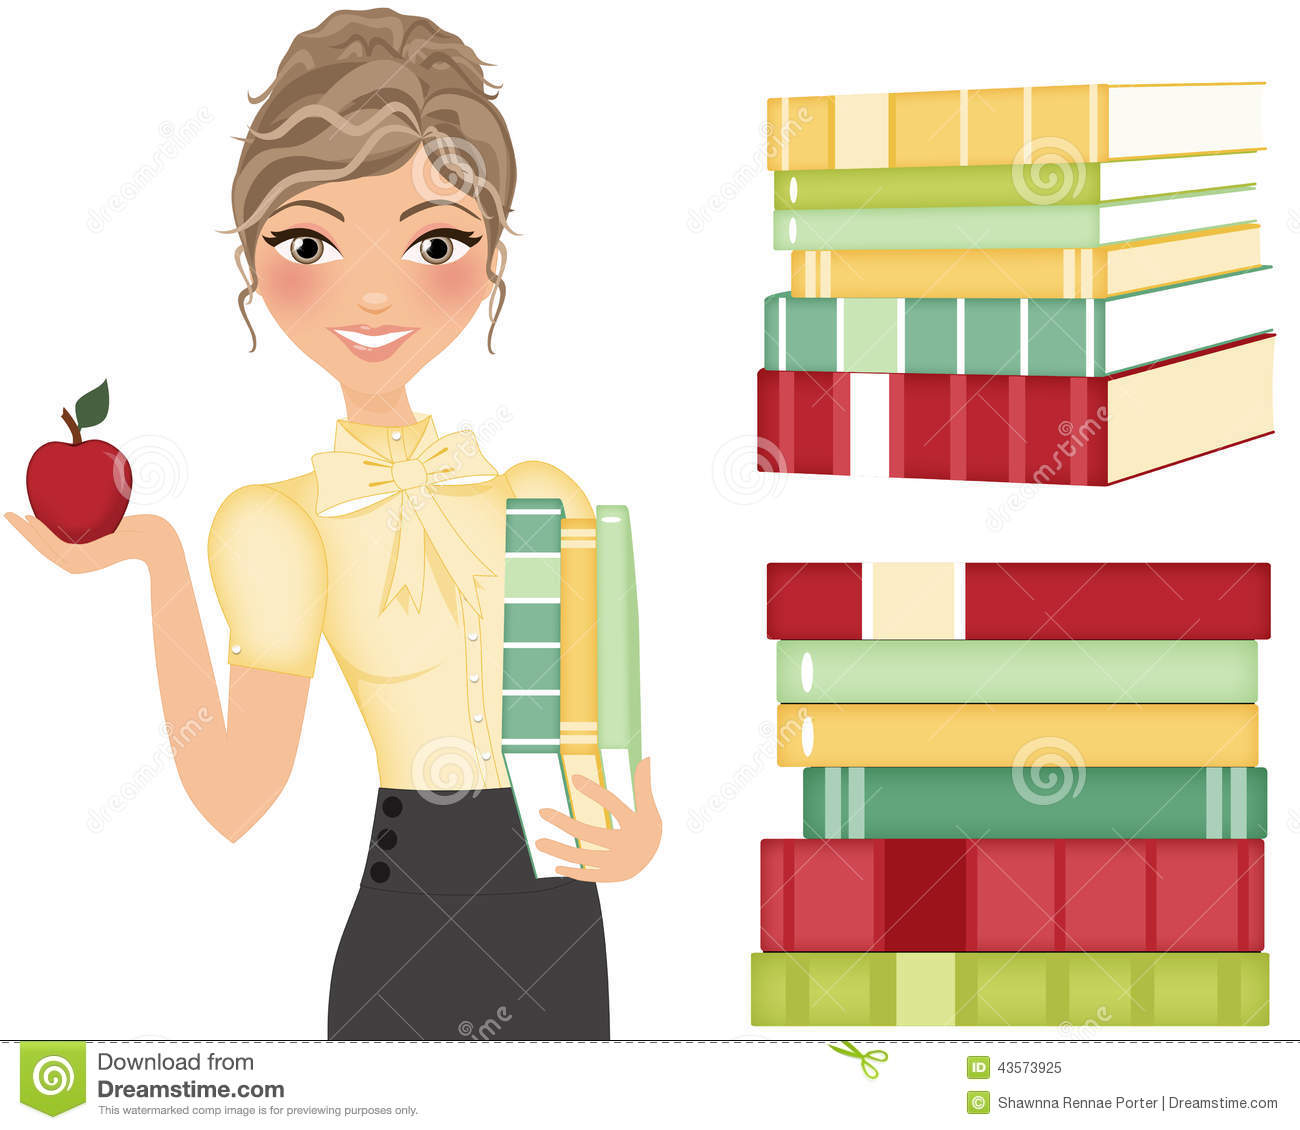 girl teacher clipart - photo #26